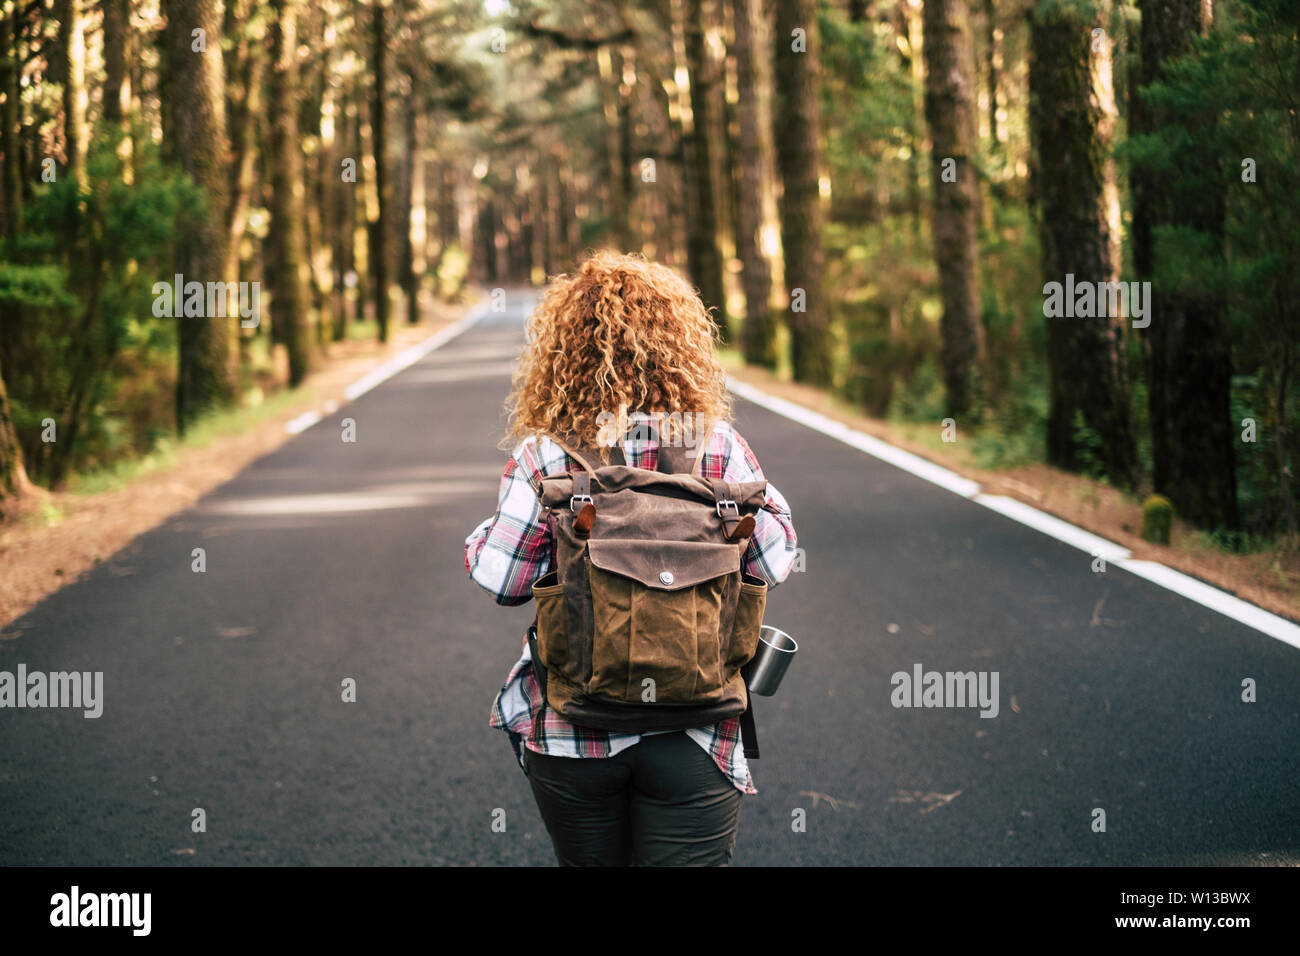 Rear view of alone woman curly hair walking in the street with backpack. Forest and mountain. Adventure and freedom concept Stock Photo